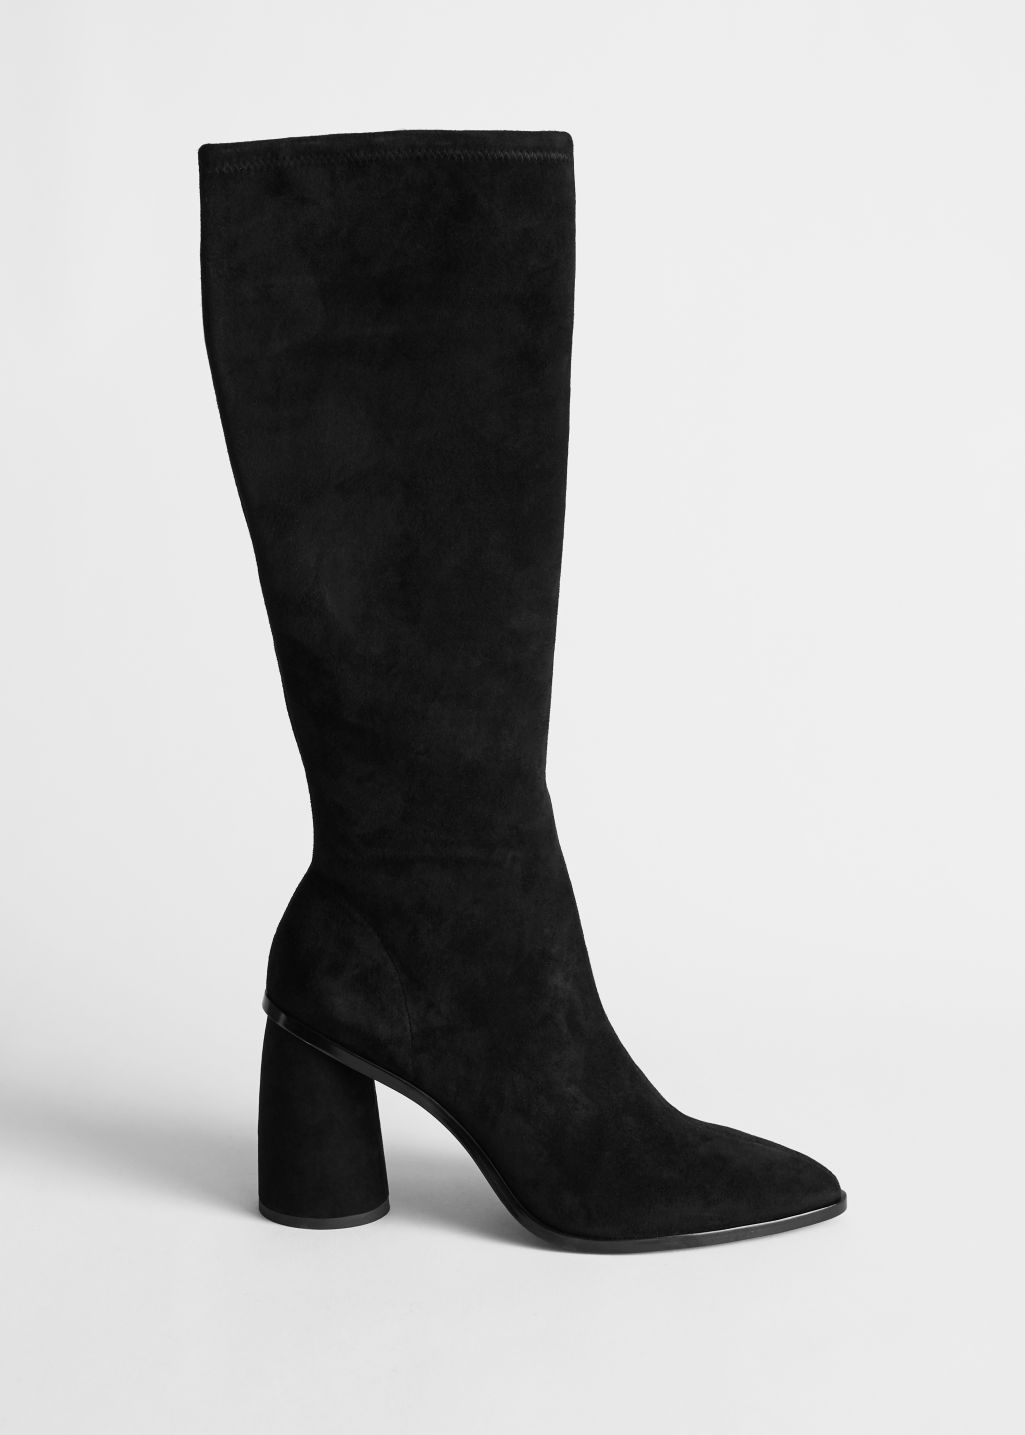 StillLife Front Image of Stories Pointed Knee High Suede Boots in Black